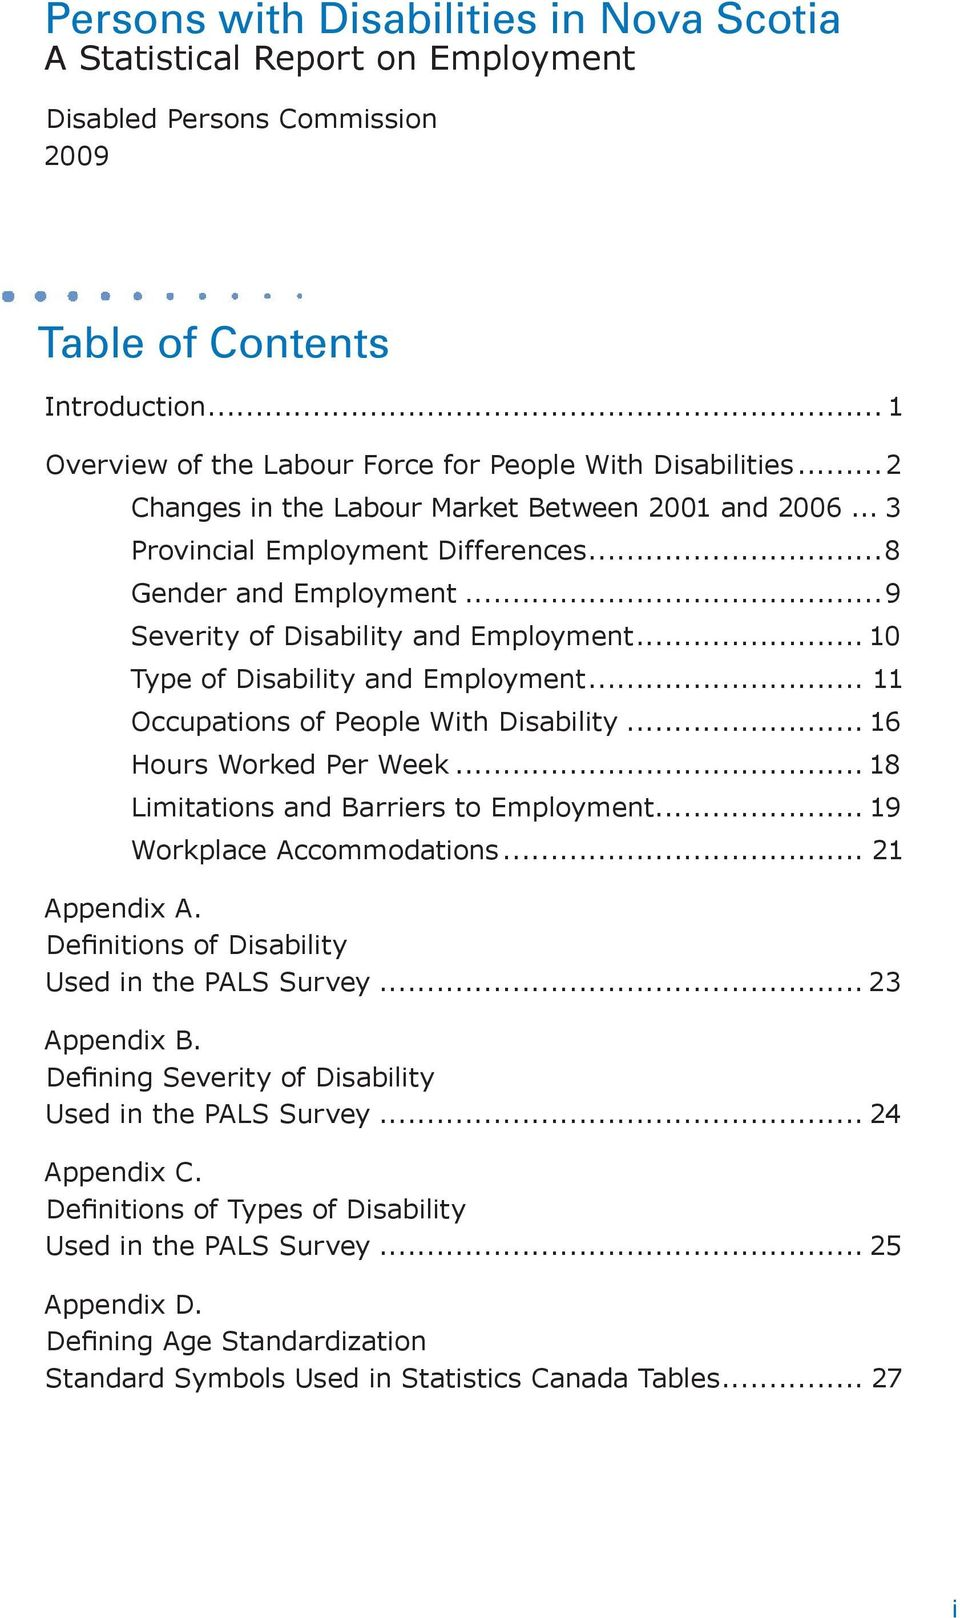 ..9 Severity of Disability and Employment... 10 Type of Disability and Employment... 11 Occupations of People With Disability... 16 Hours Worked Per Week... 18 Limitations and Barriers to Employment.